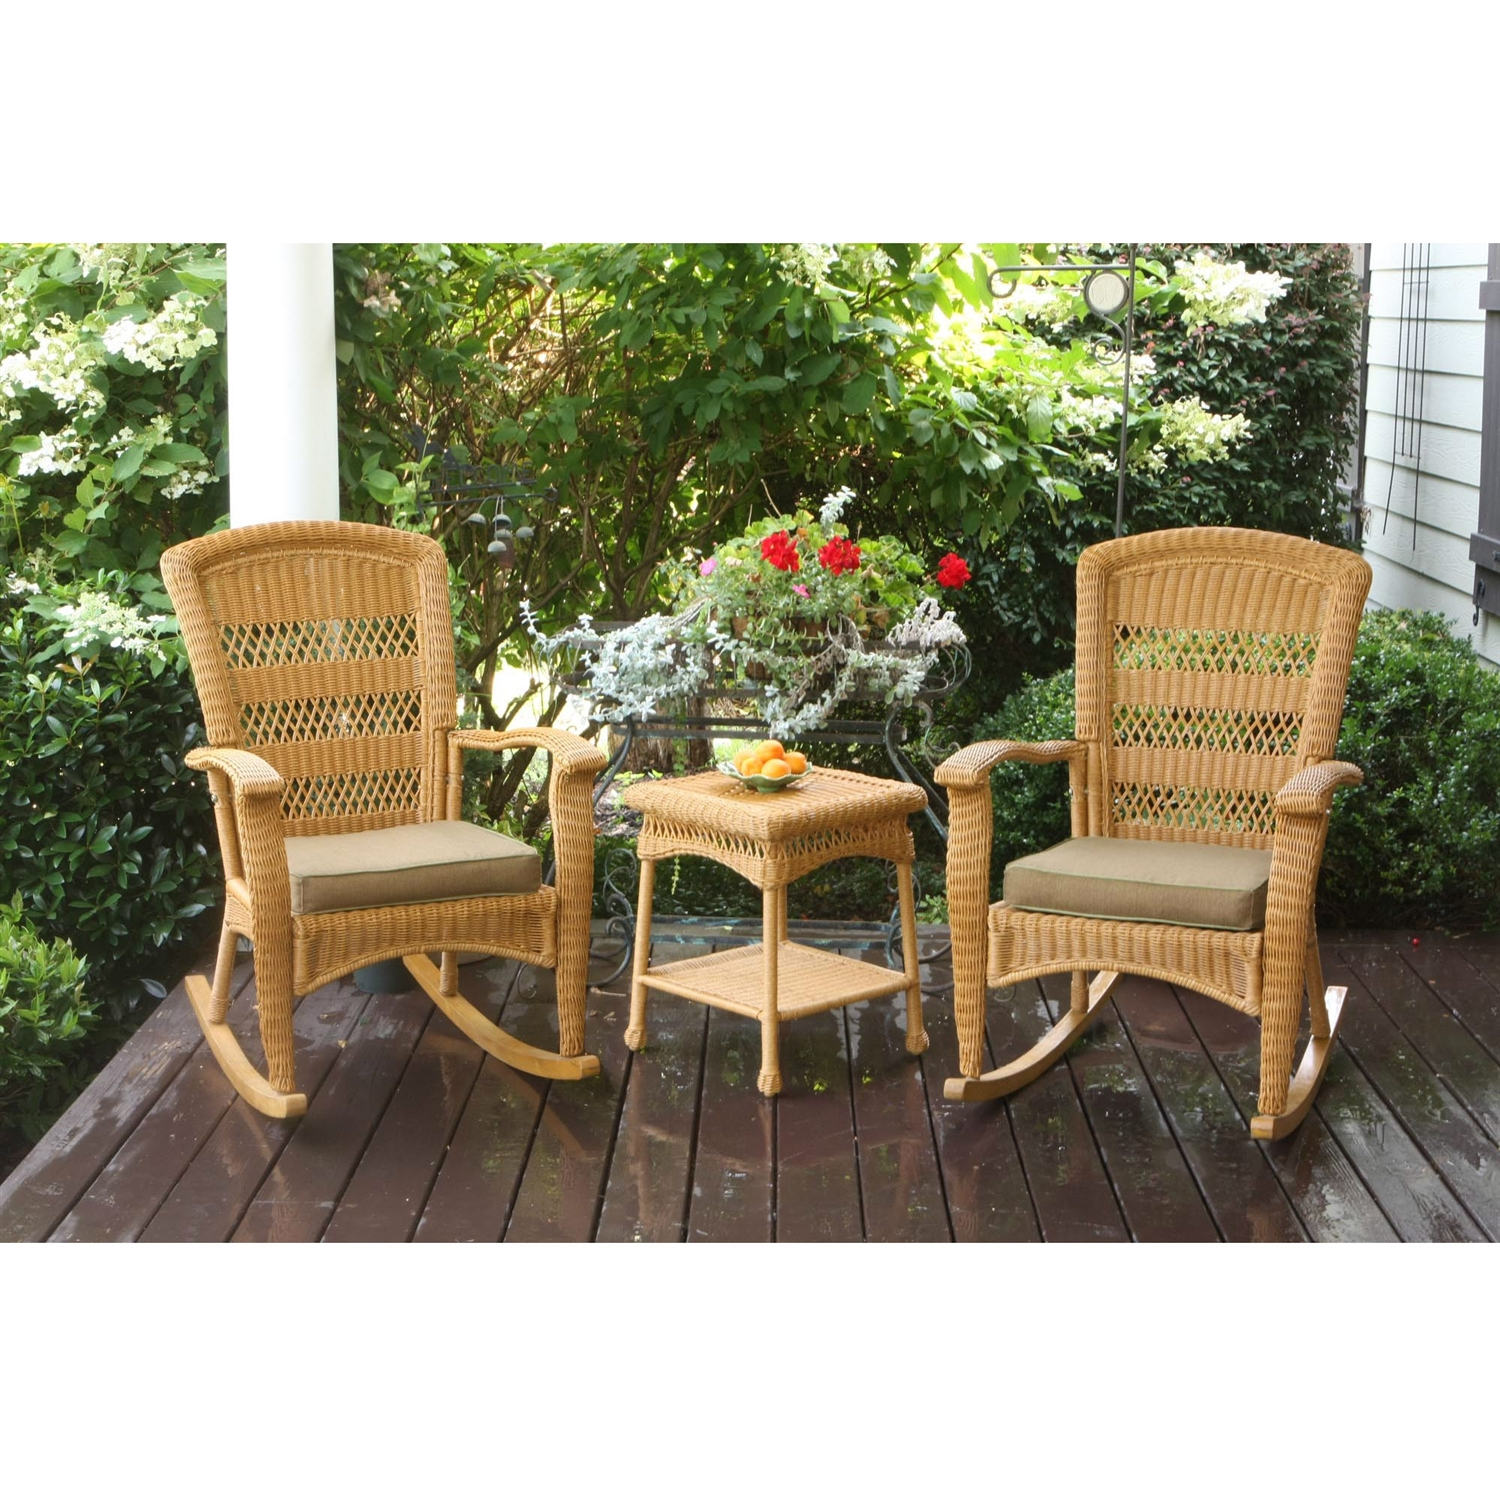 rocking chair for two office guest 3pc outdoor porch rocker set w 2 amber wicker resin